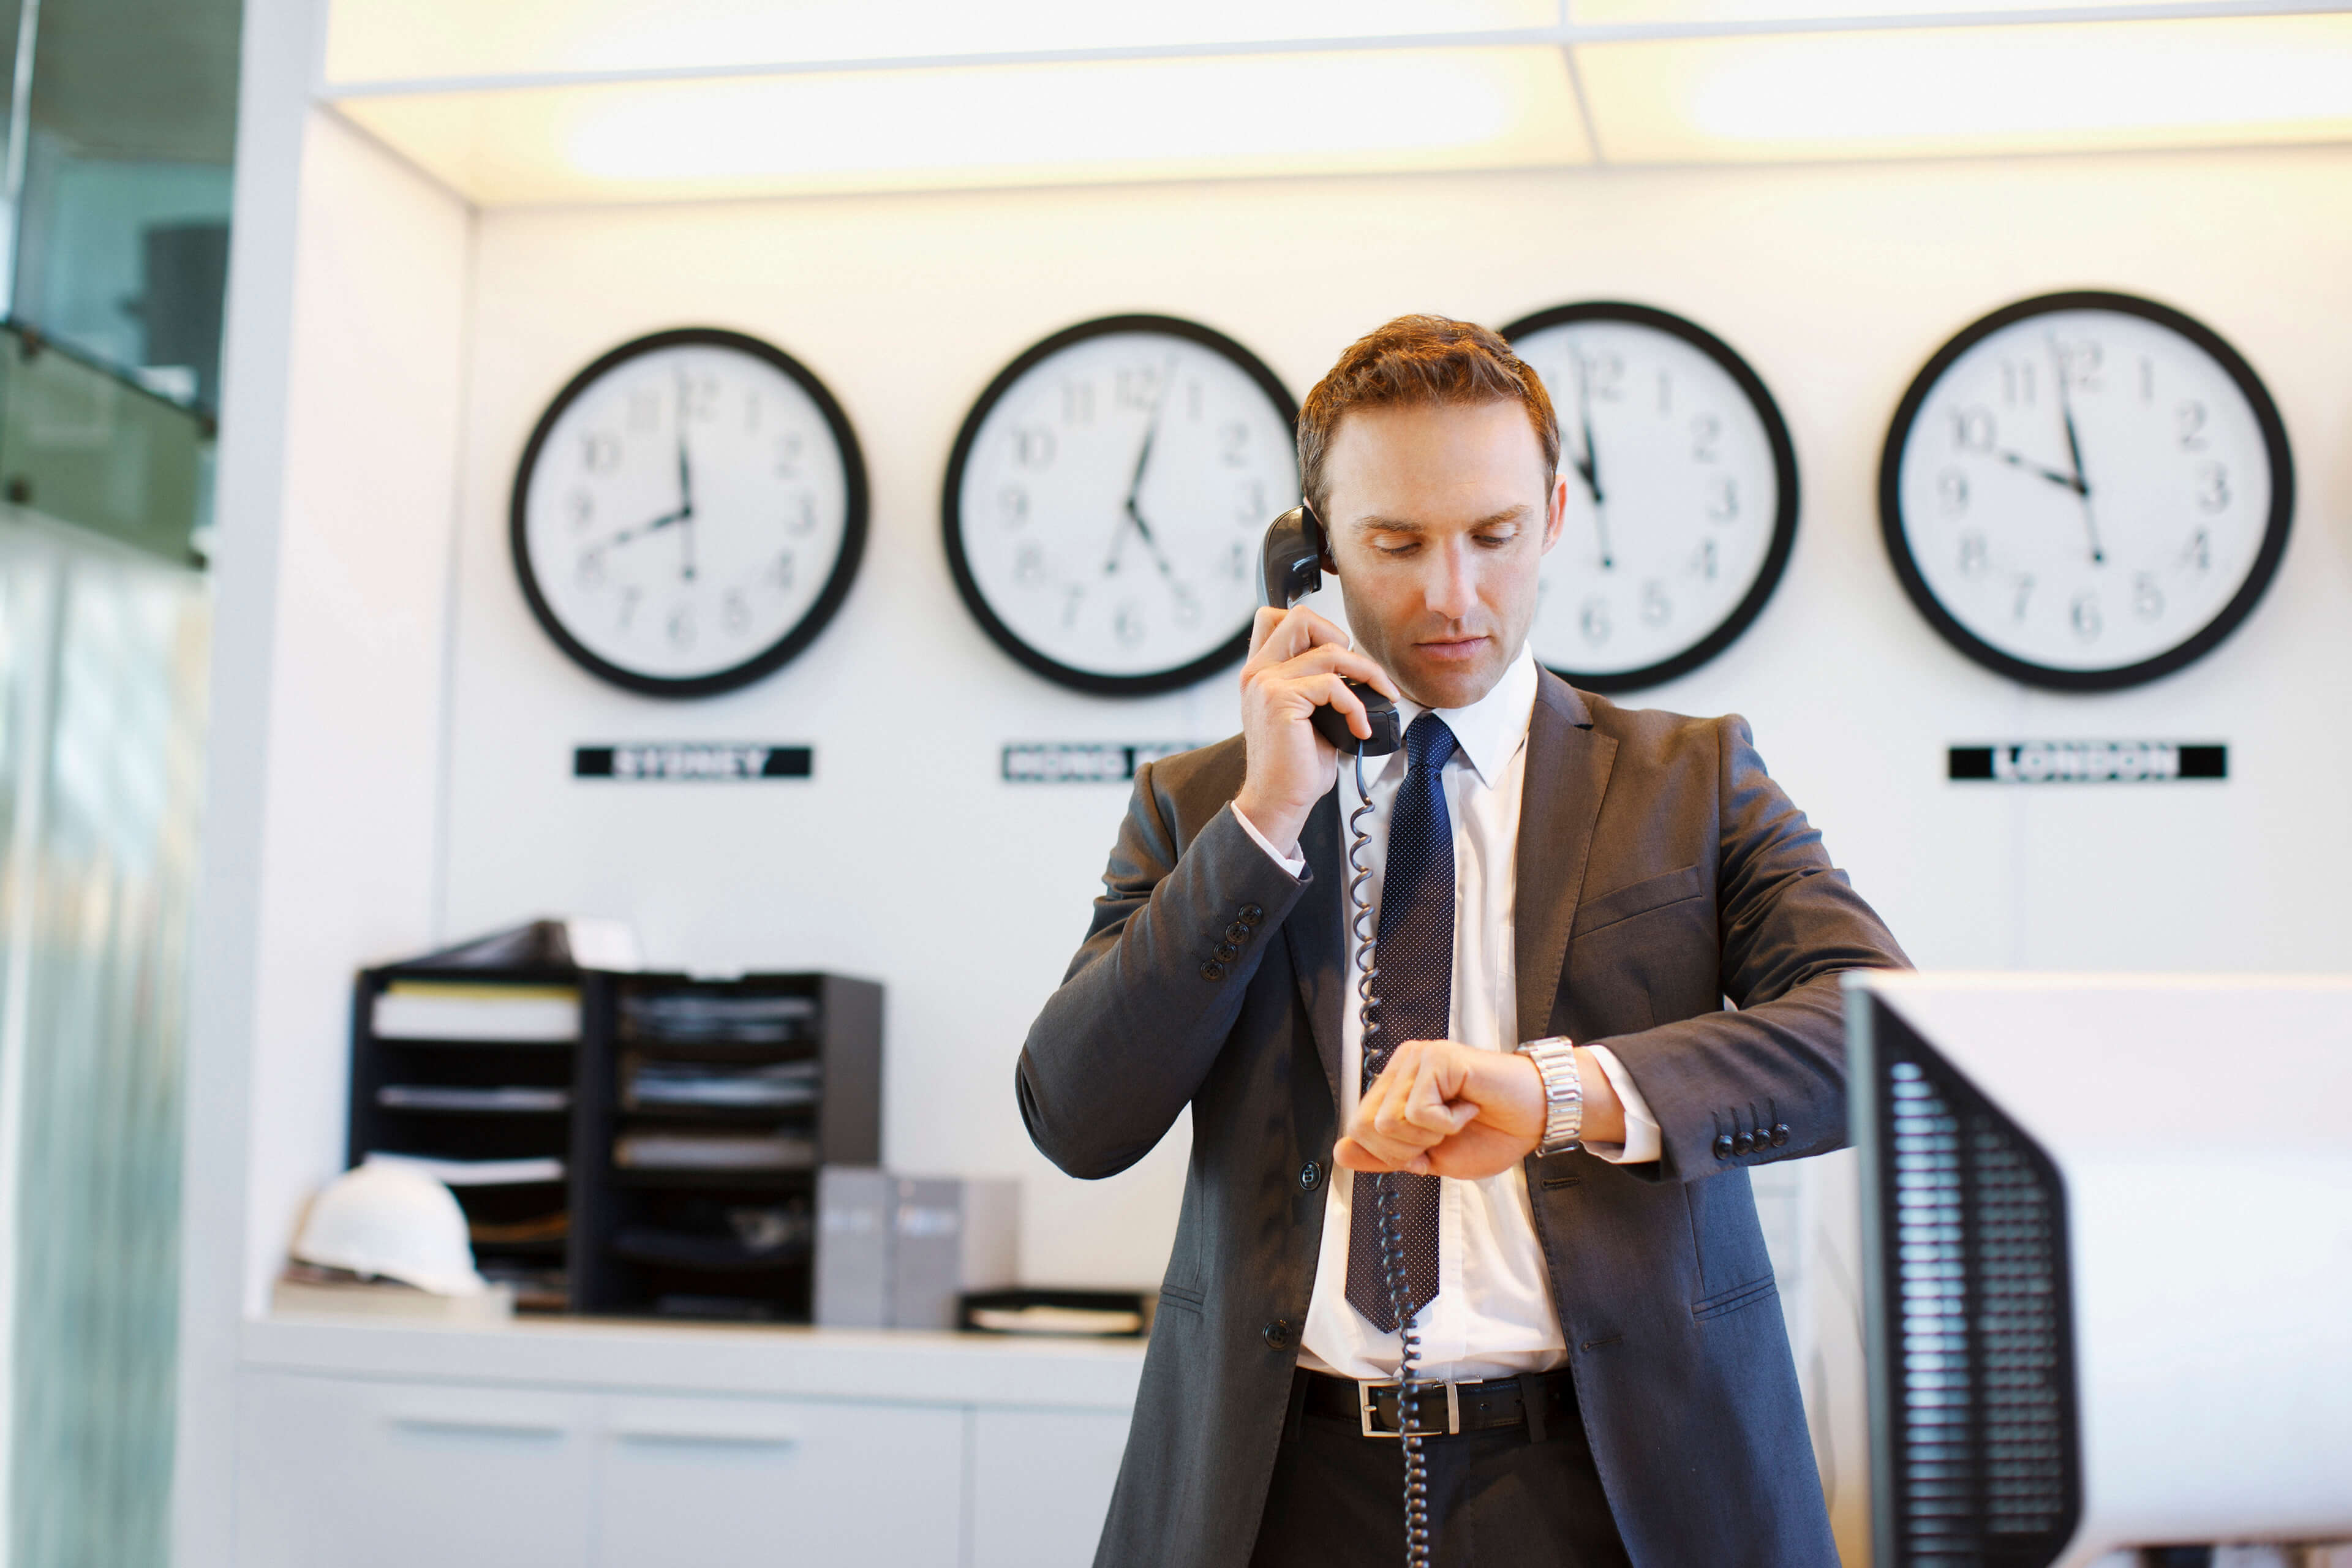 A man checks his watch in front of several clocks